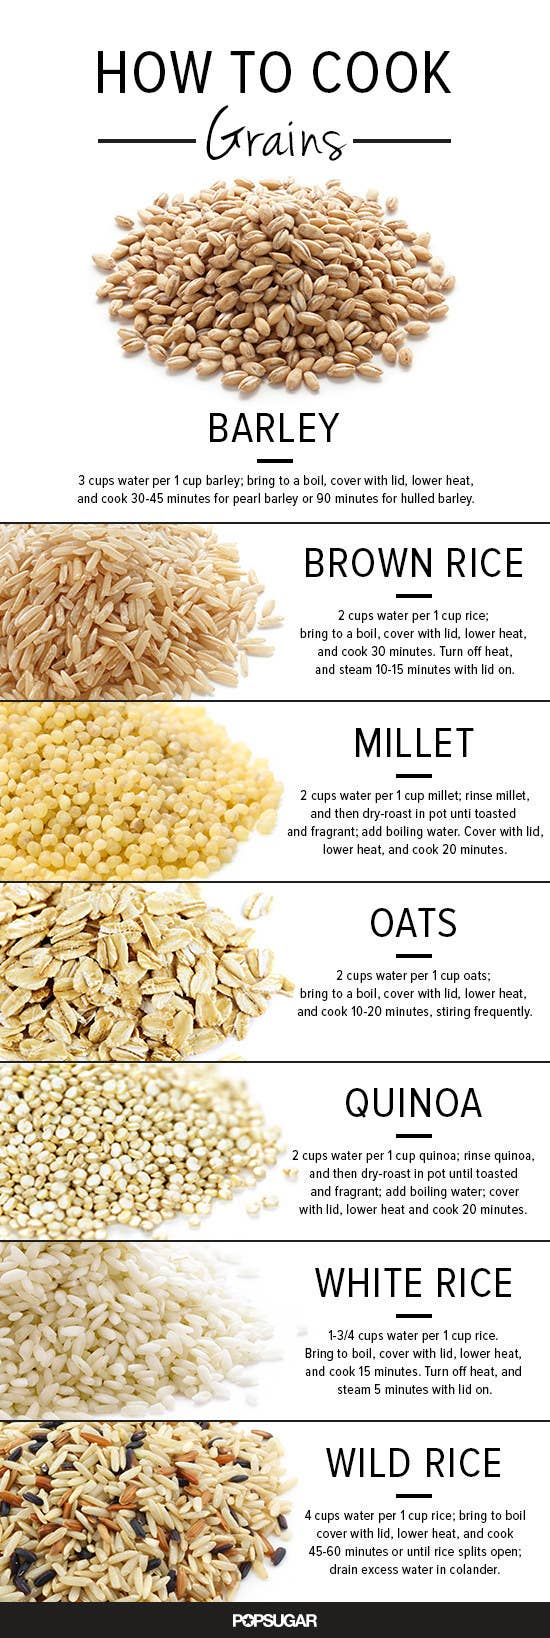 For Making All The Healthiest Grains